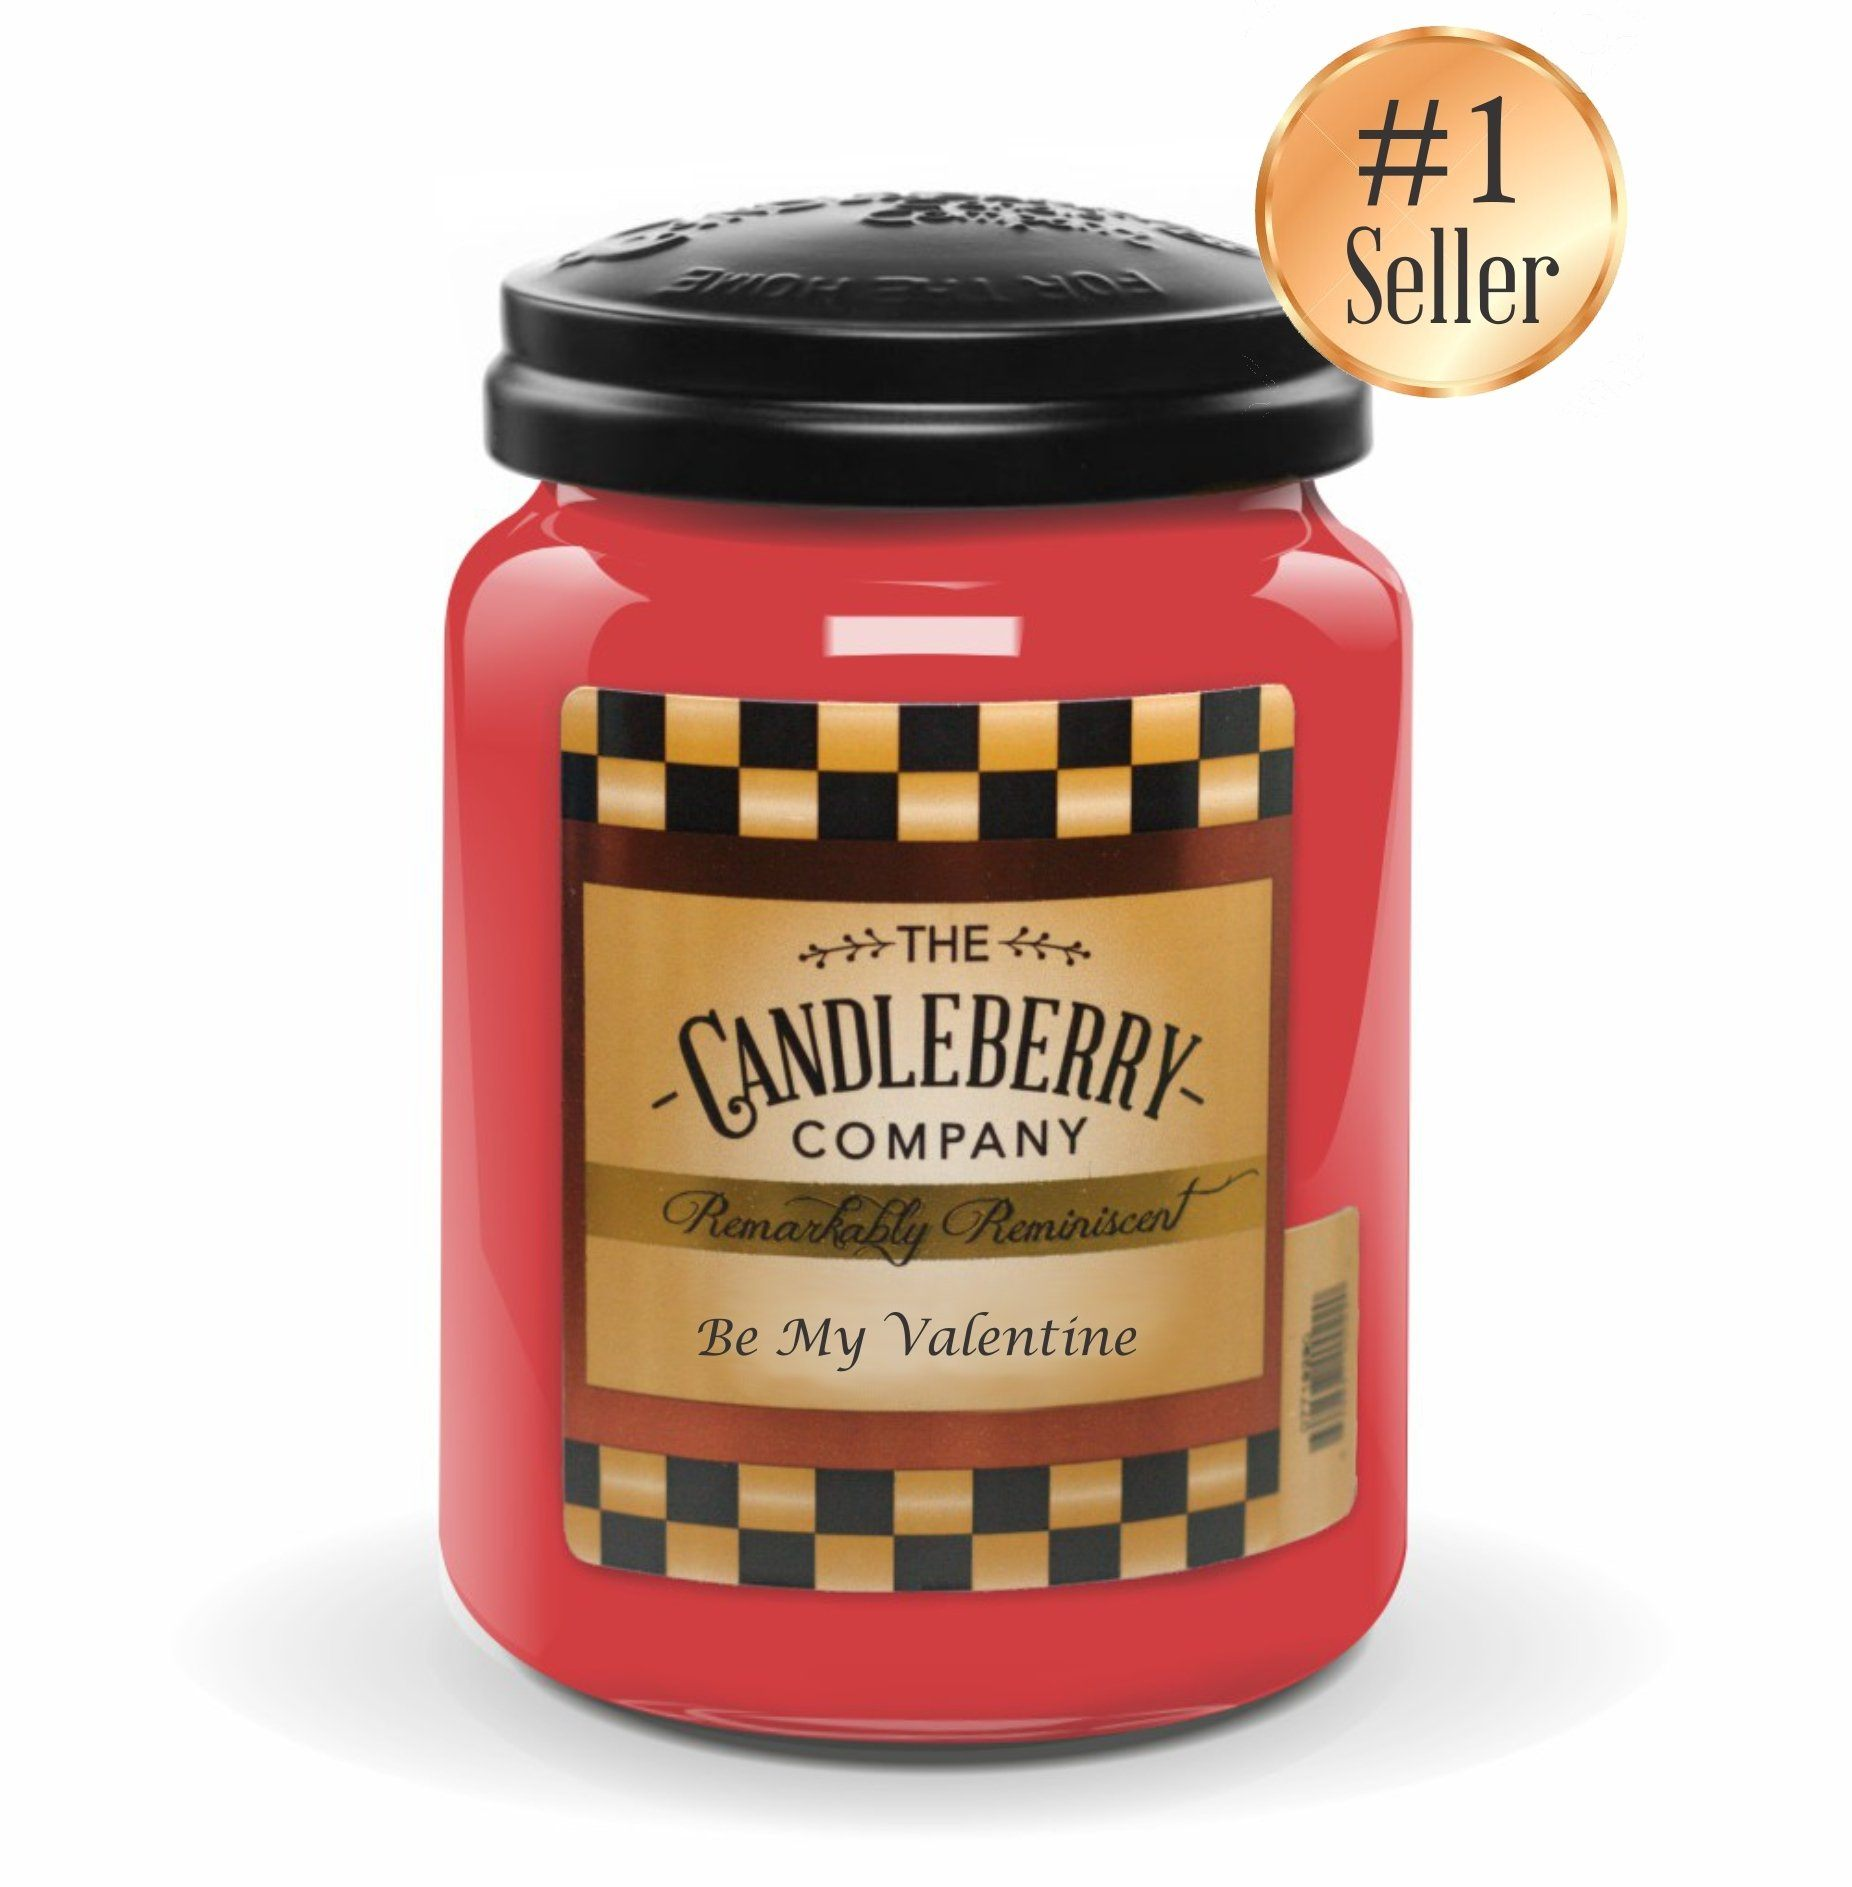 Be My Valentine™, 26 oz. Jar, Scented Candle